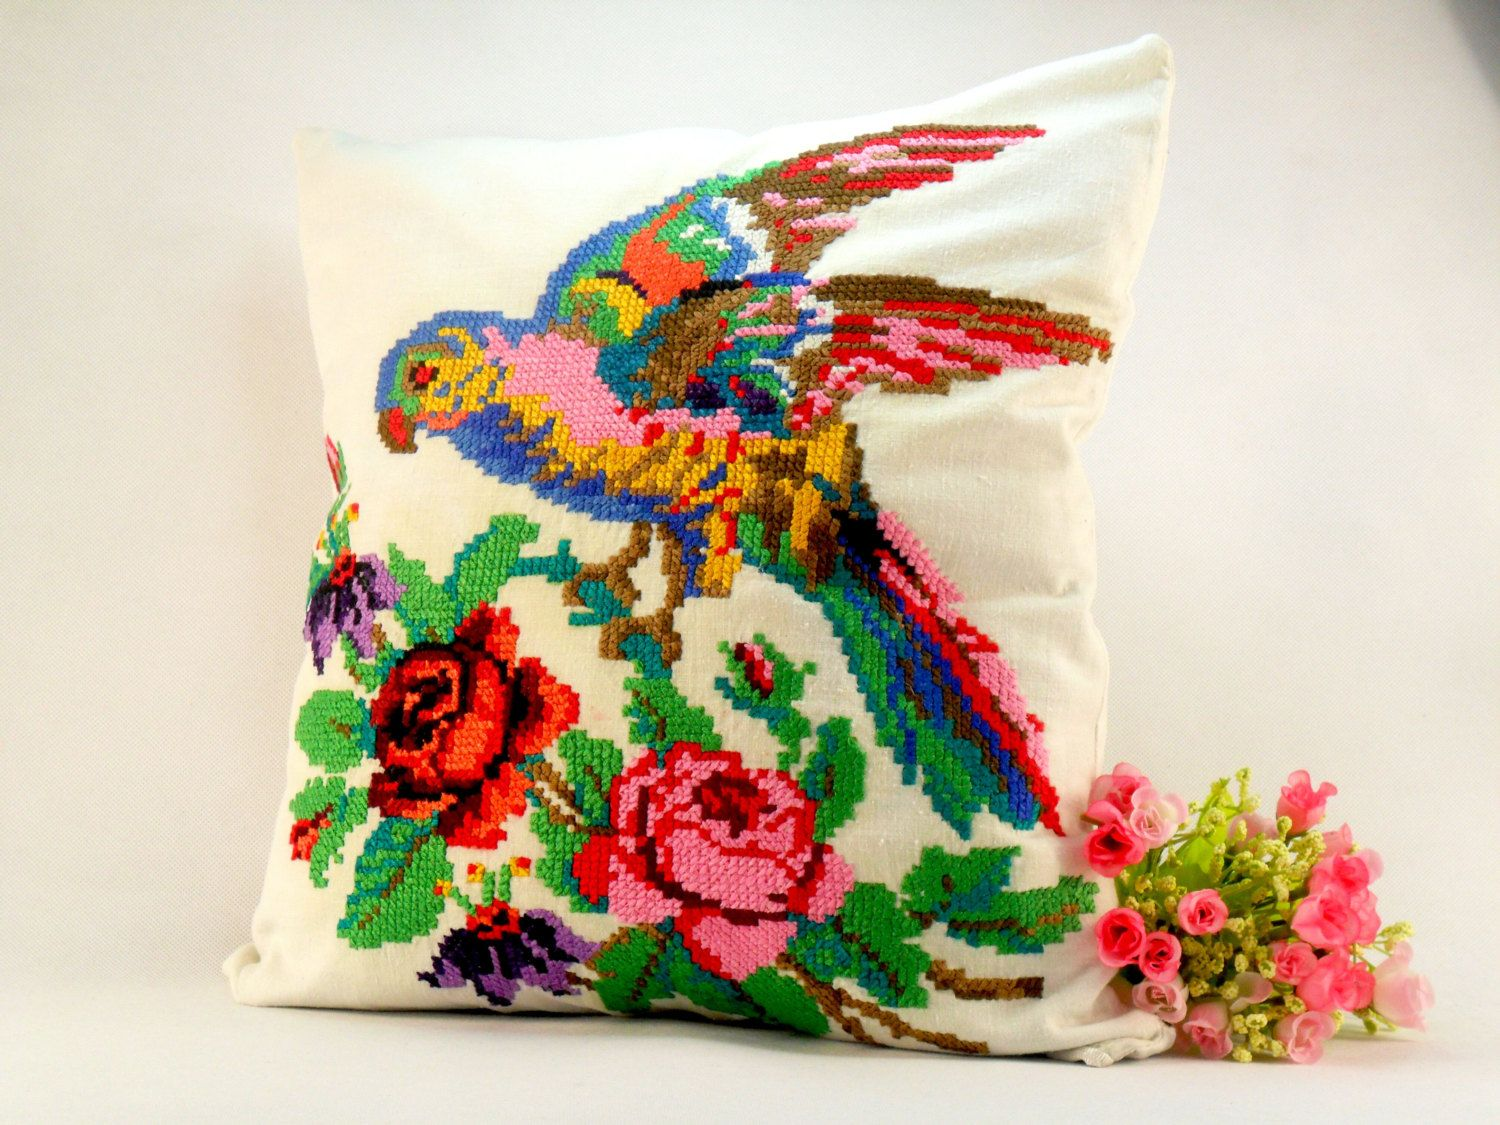 Pillowcase embroidery Organic floral pillowcase Shabby chic decorative pillows Multicolor decorative pillows vintage Embroidered cushion